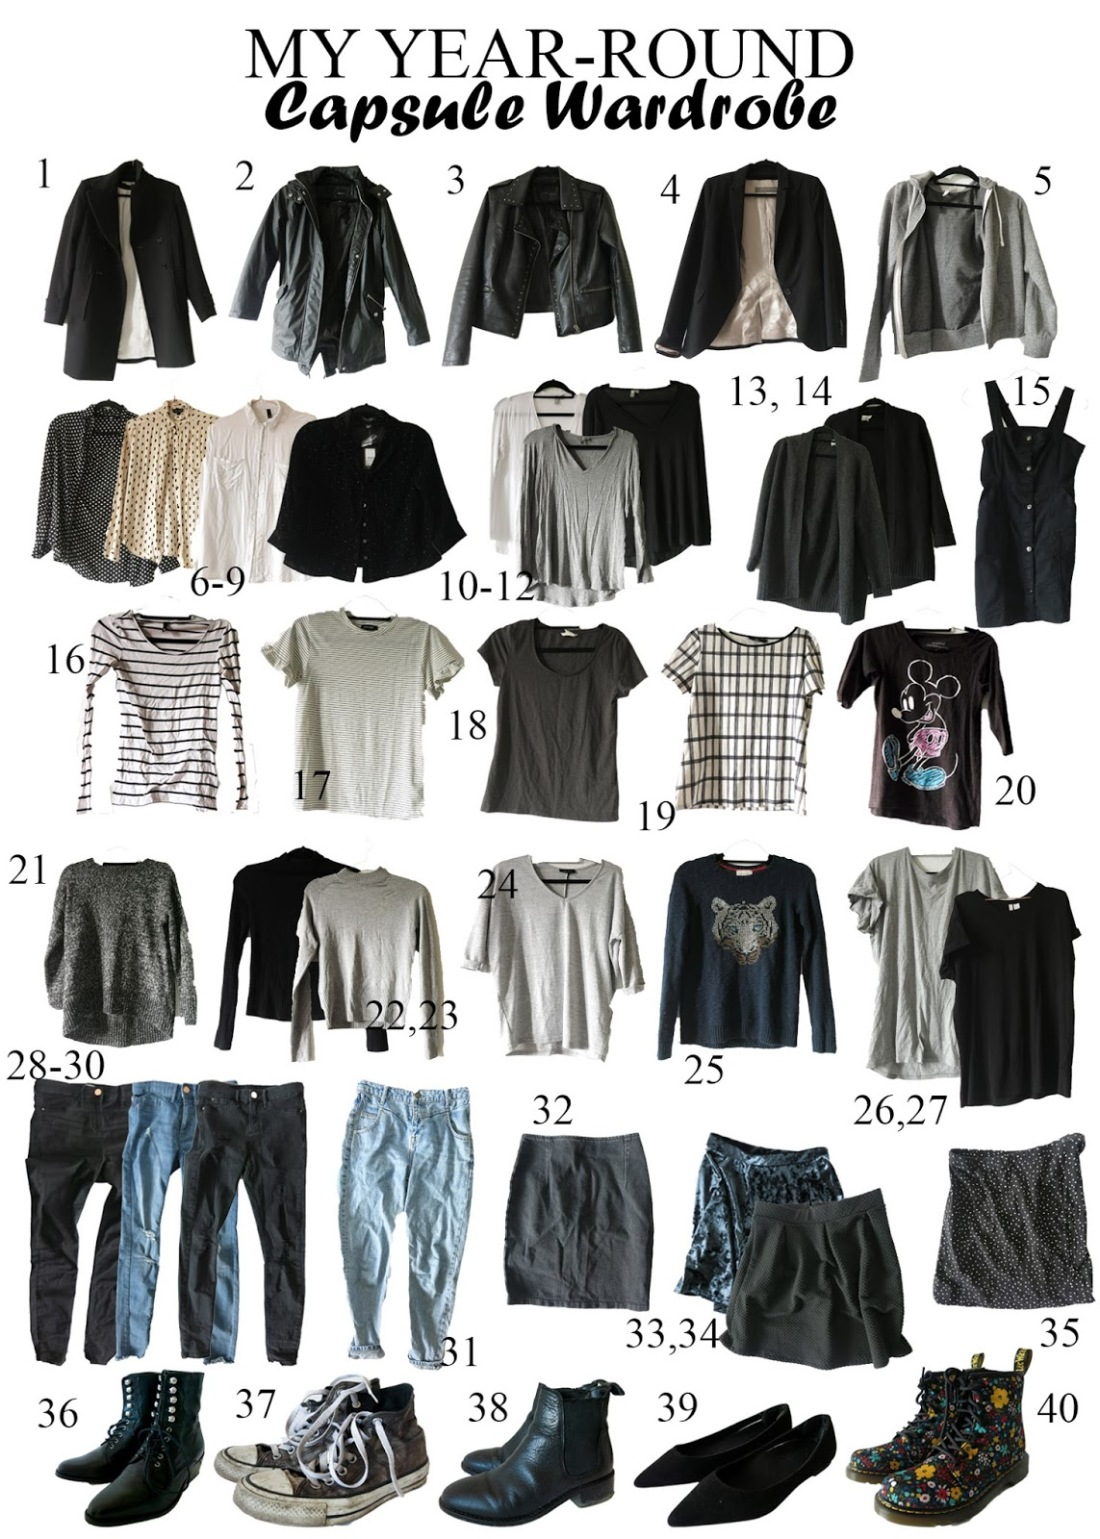 overview of the contents of my capsule wardrobe